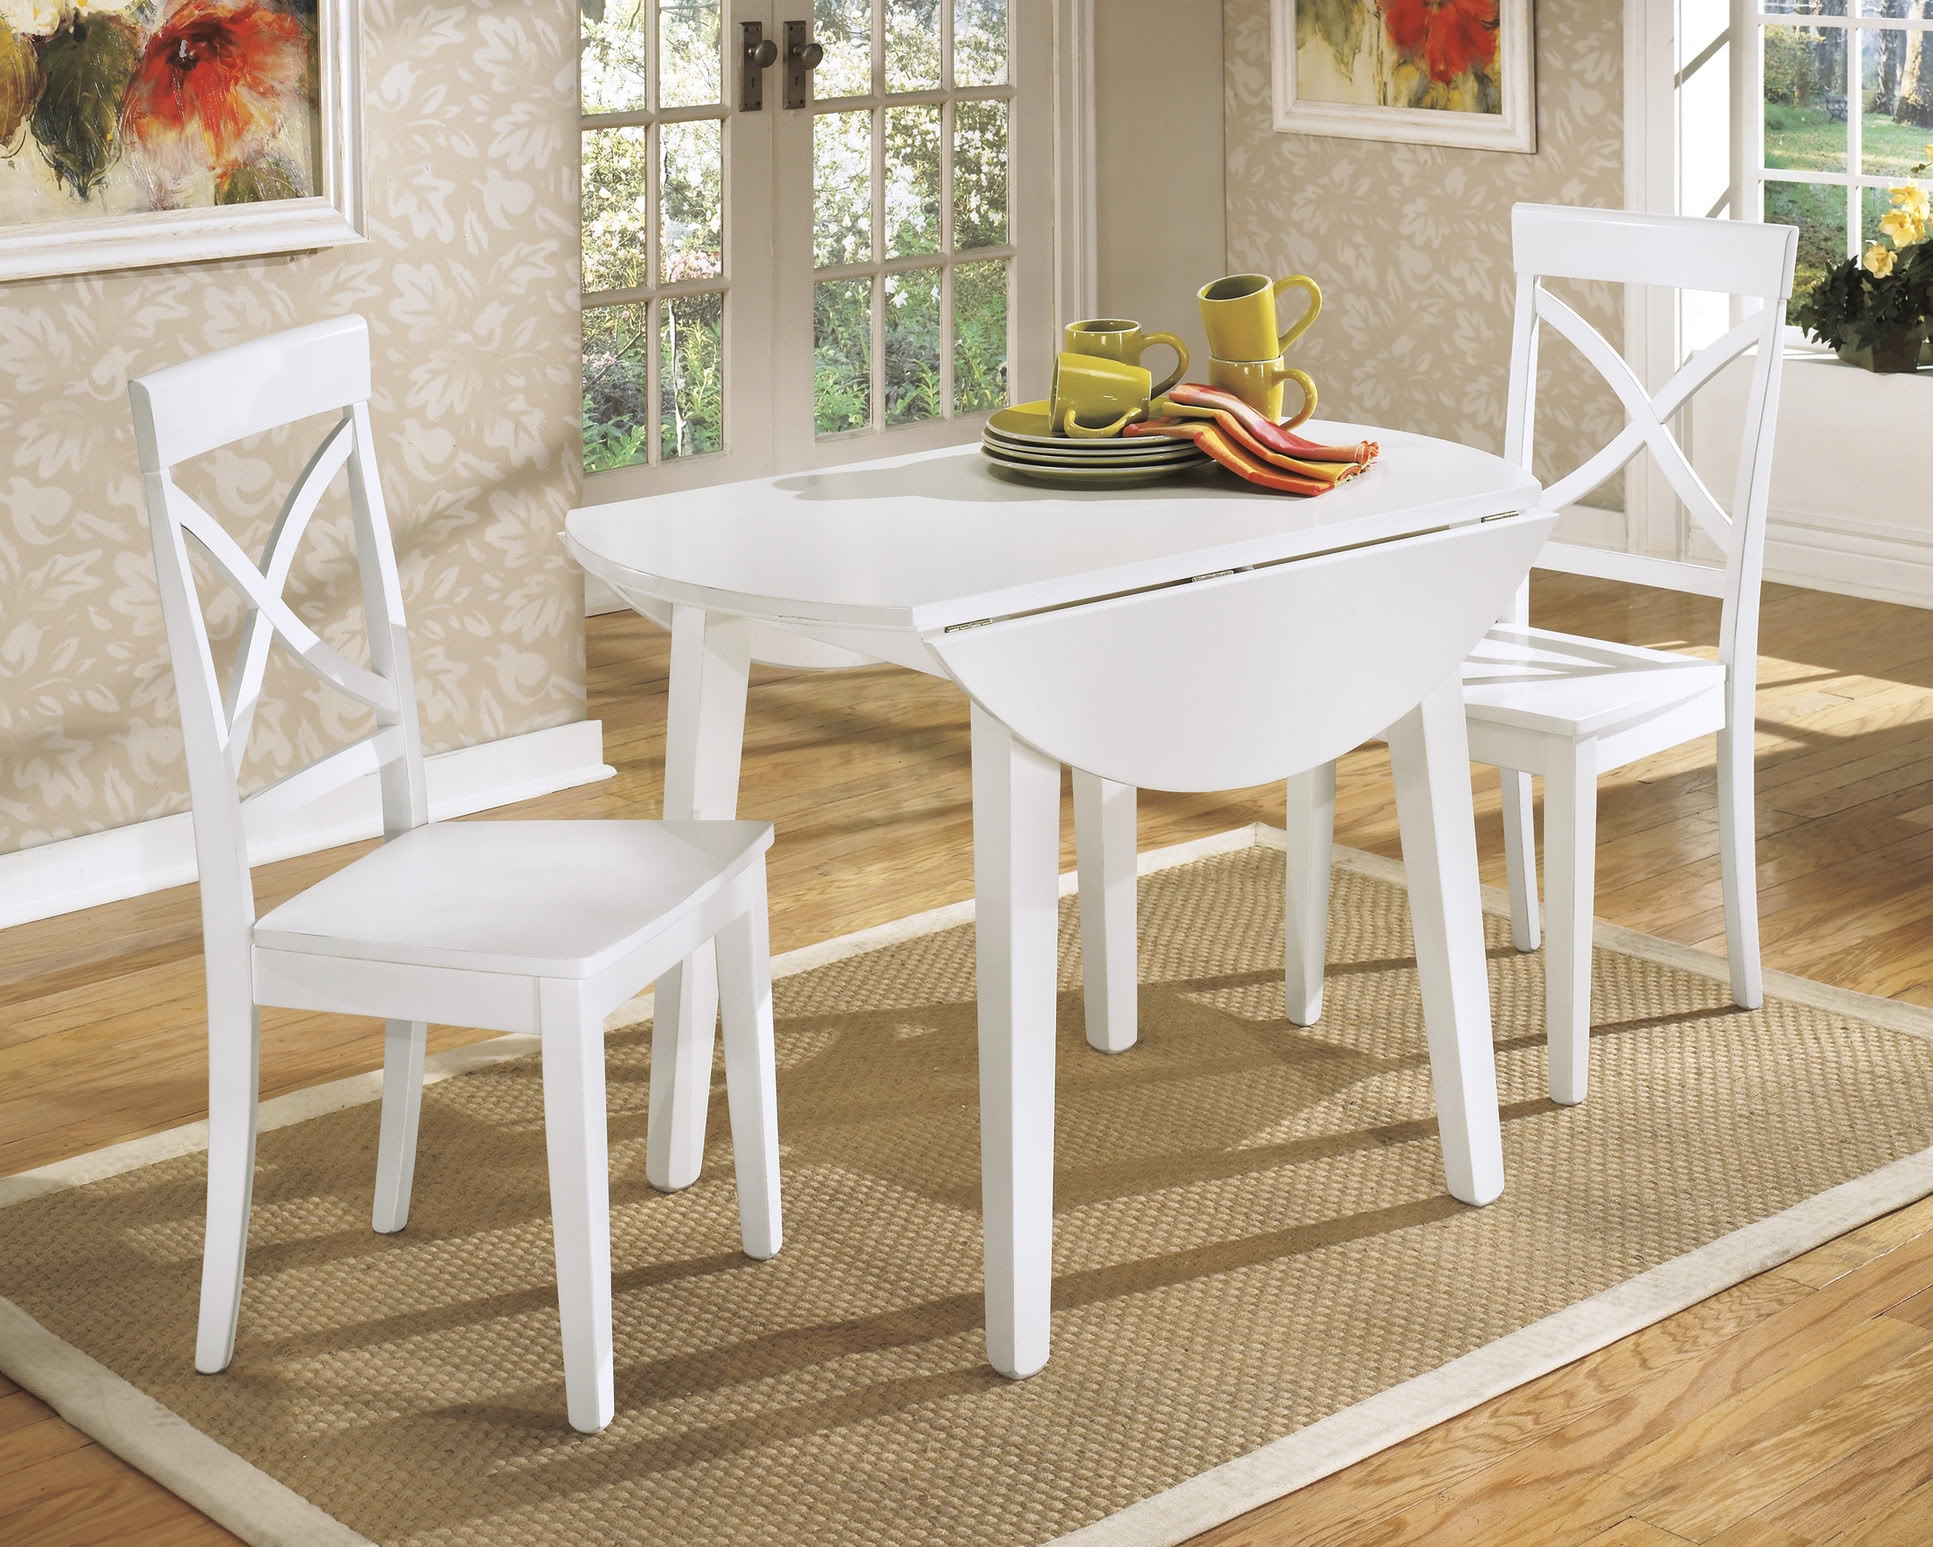 Small White Kitchen Table – Home design and Decorating